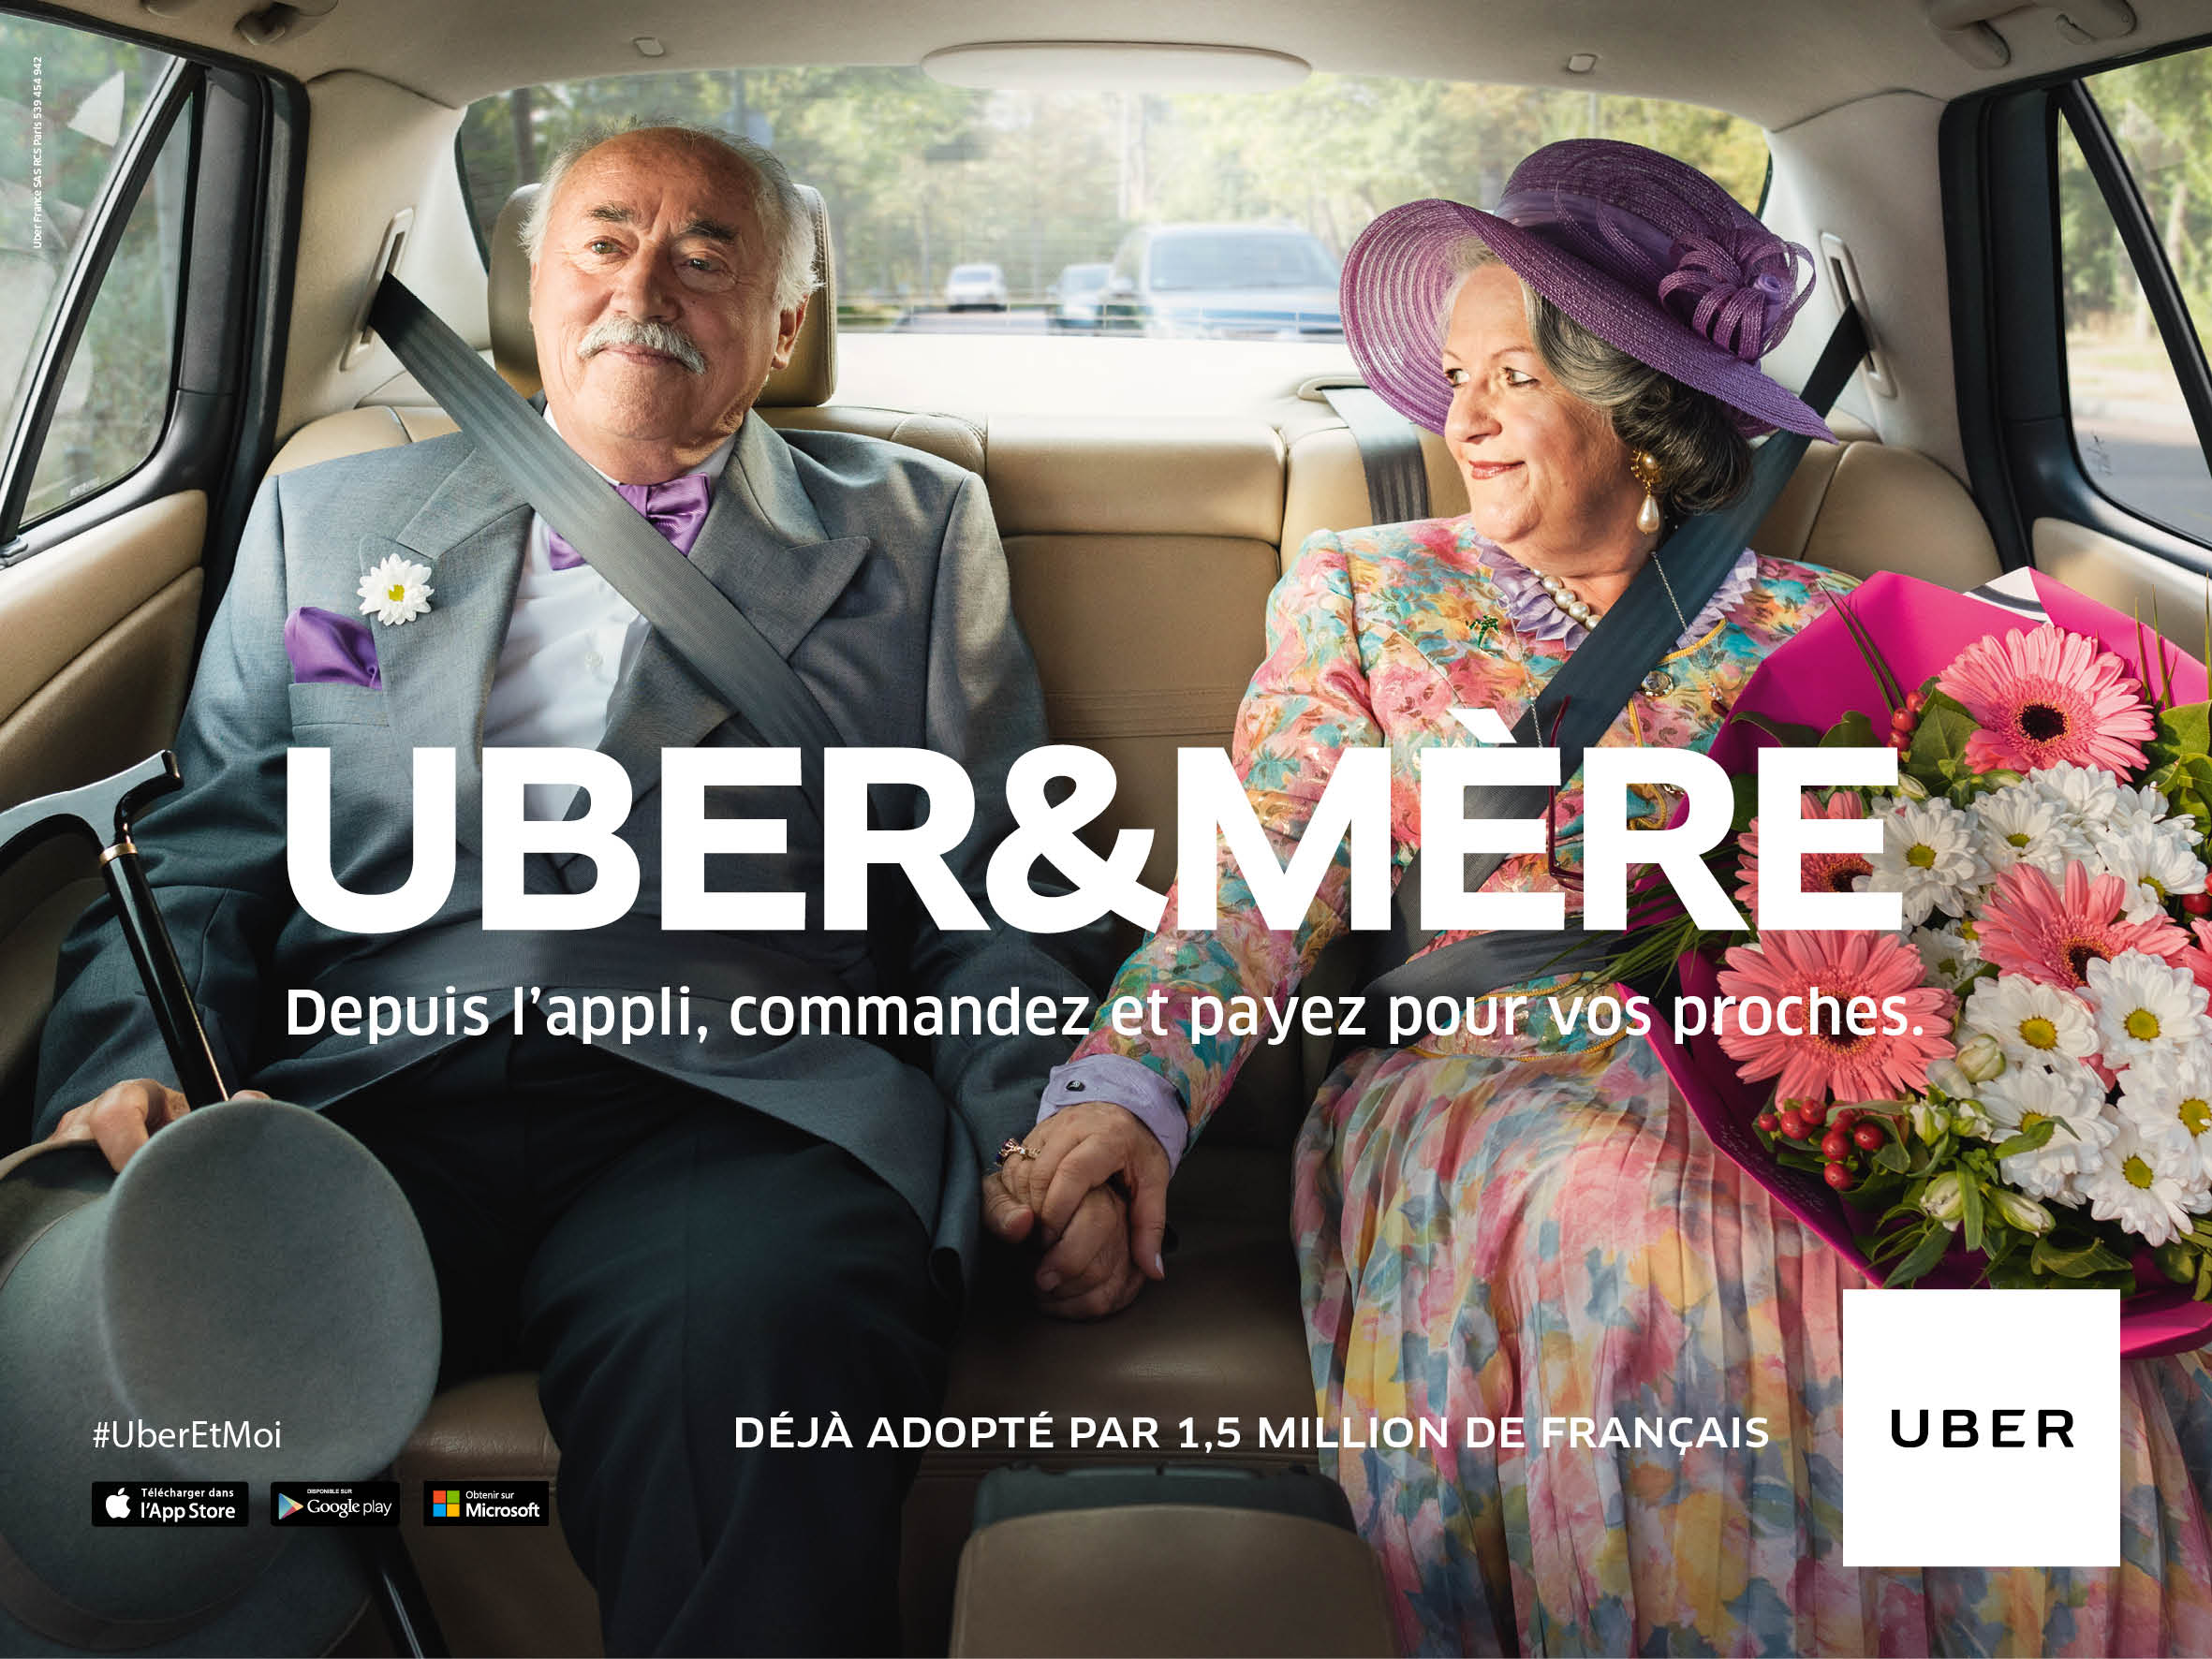 uber-france-publicite-marketing-application-utilisateurs-passagers-mars-2016-agence-marcel-publicis-1